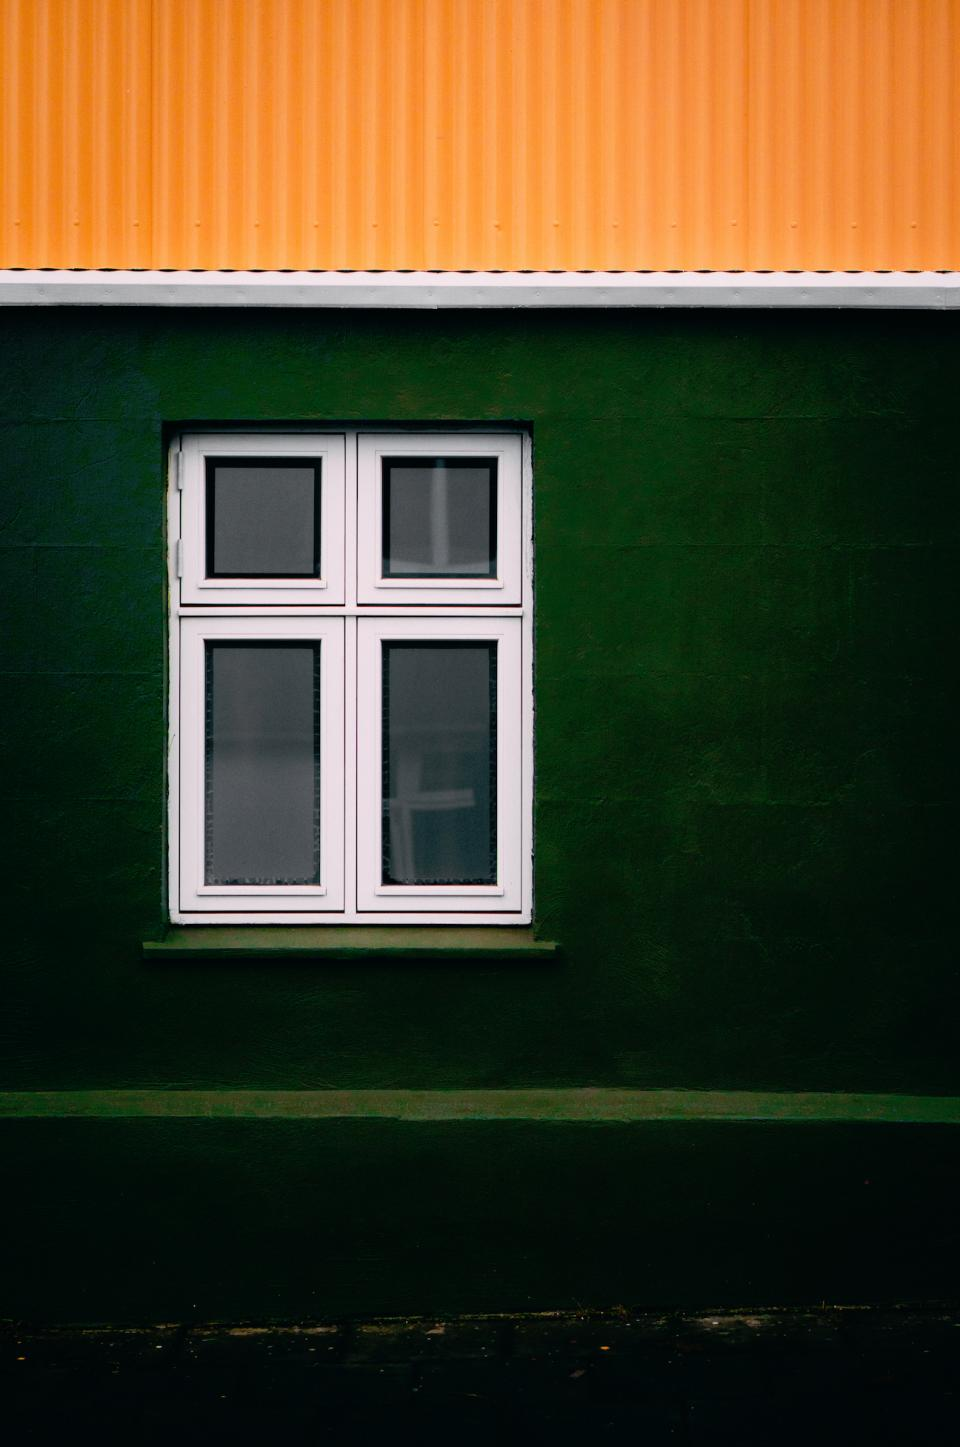 places windows structure glass green yellow